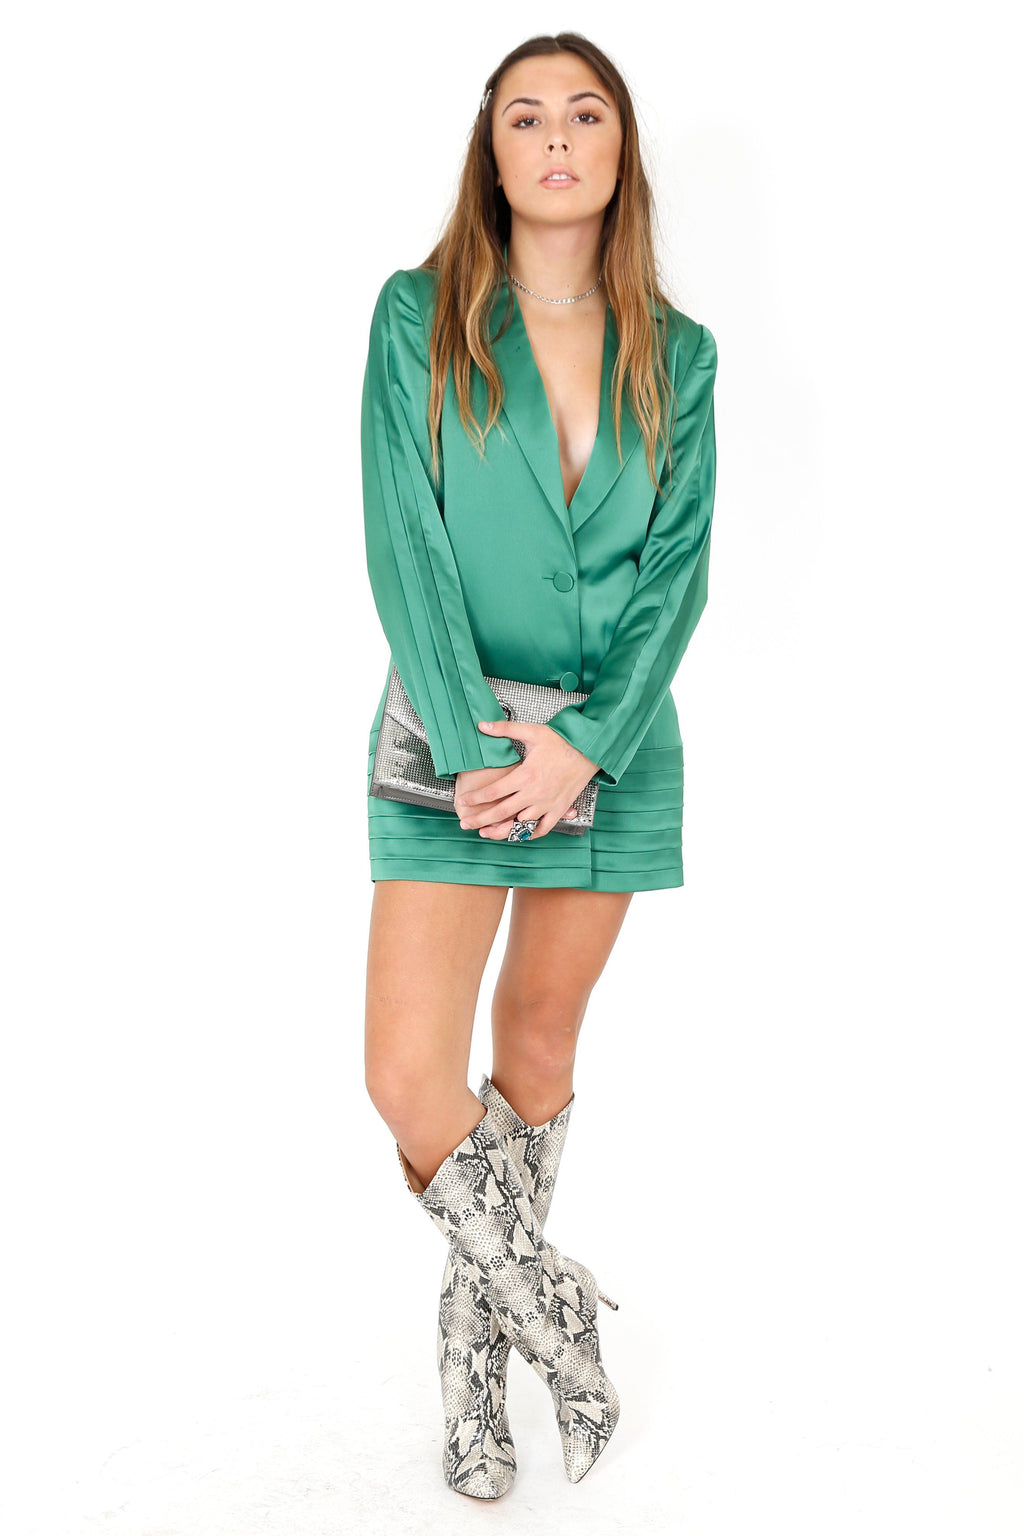 ALEXIS | Oskari Jacket Dress - Emerald Green